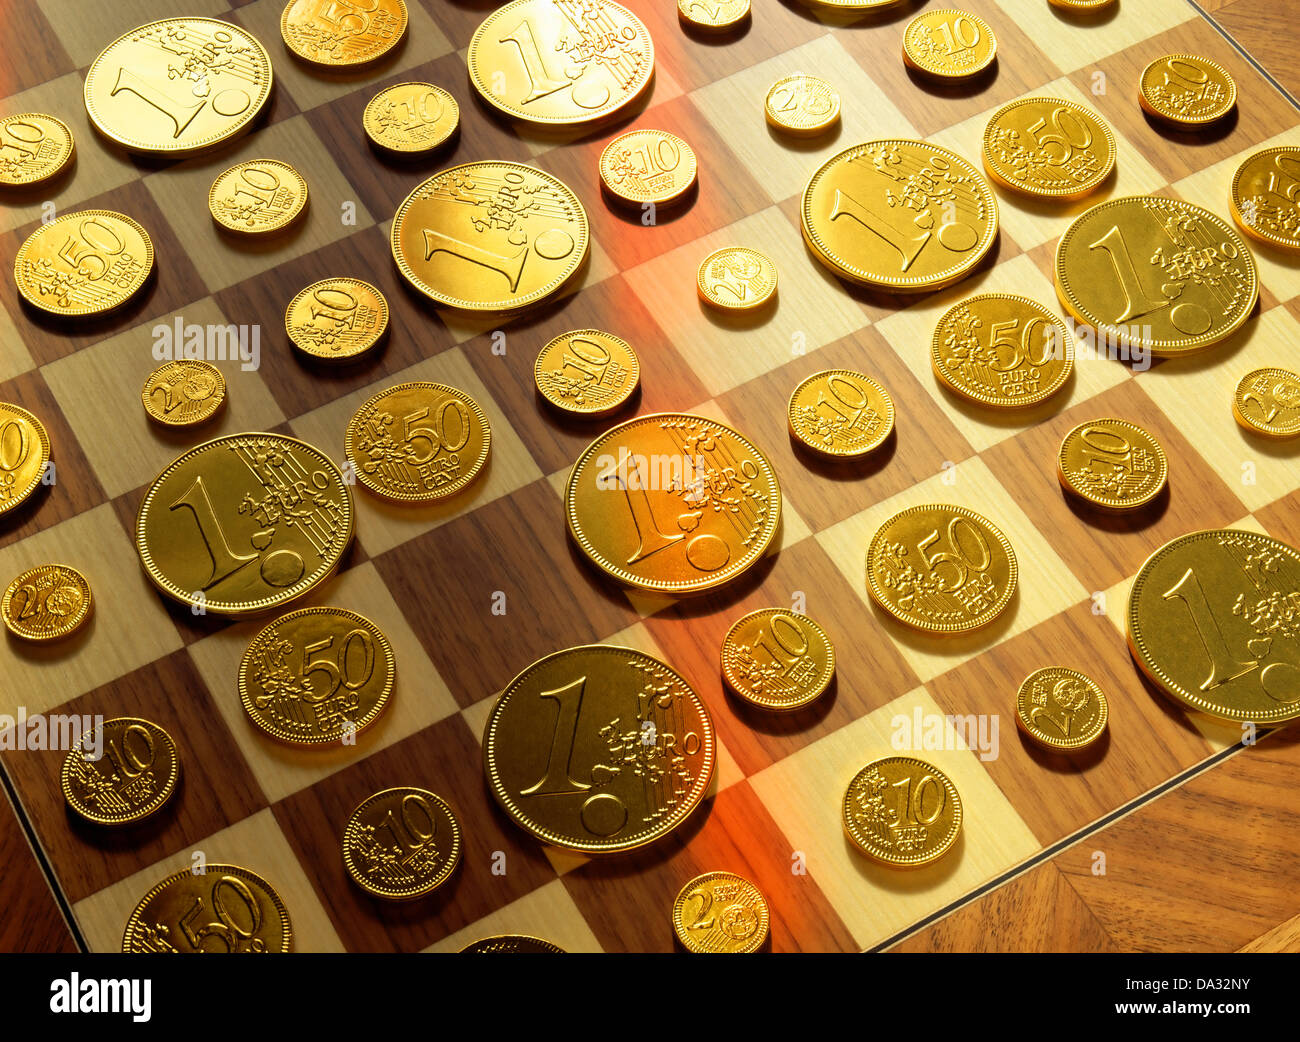 Golden Euro Coins On Chessboard Stock Photo 57845703 Alamy